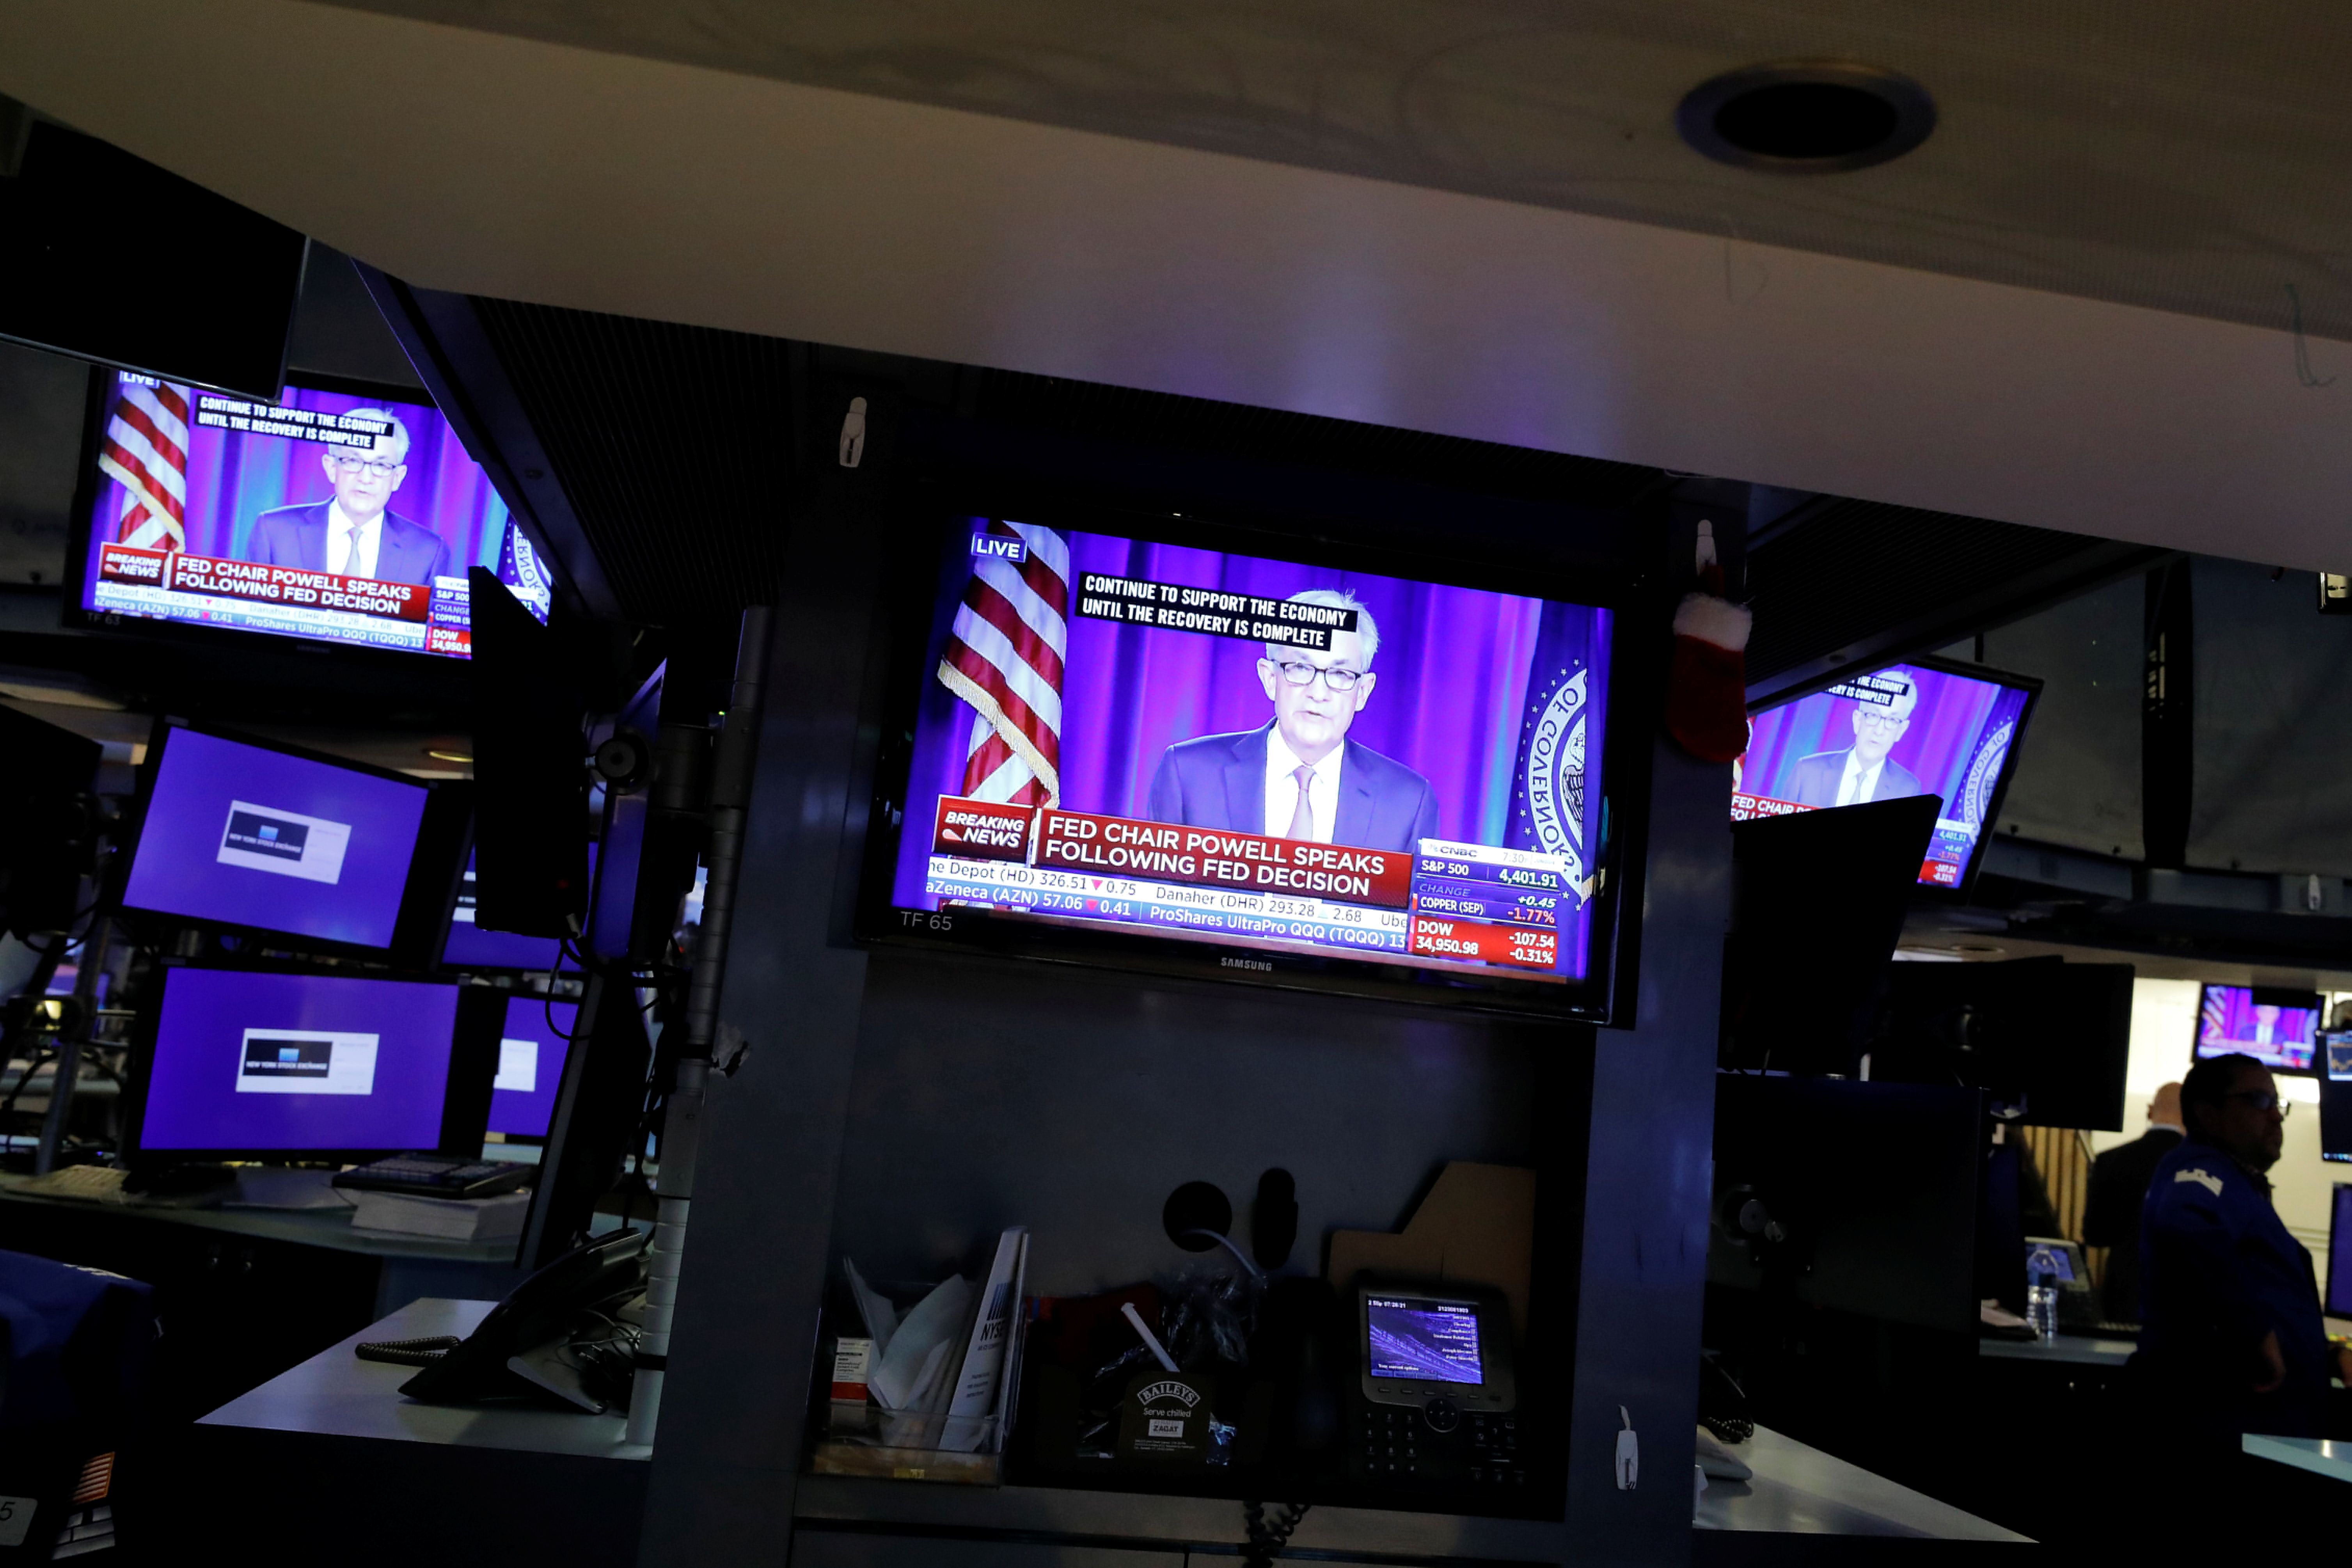 A screen displays a statement by Federal Reserve Chair Jerome Powell following the U.S. Federal Reserve's announcement as a trader works on the trading floor at New York Stock Exchange (NYSE) in New York City, New York, U.S., July 28, 2021. REUTERS/Andrew Kelly